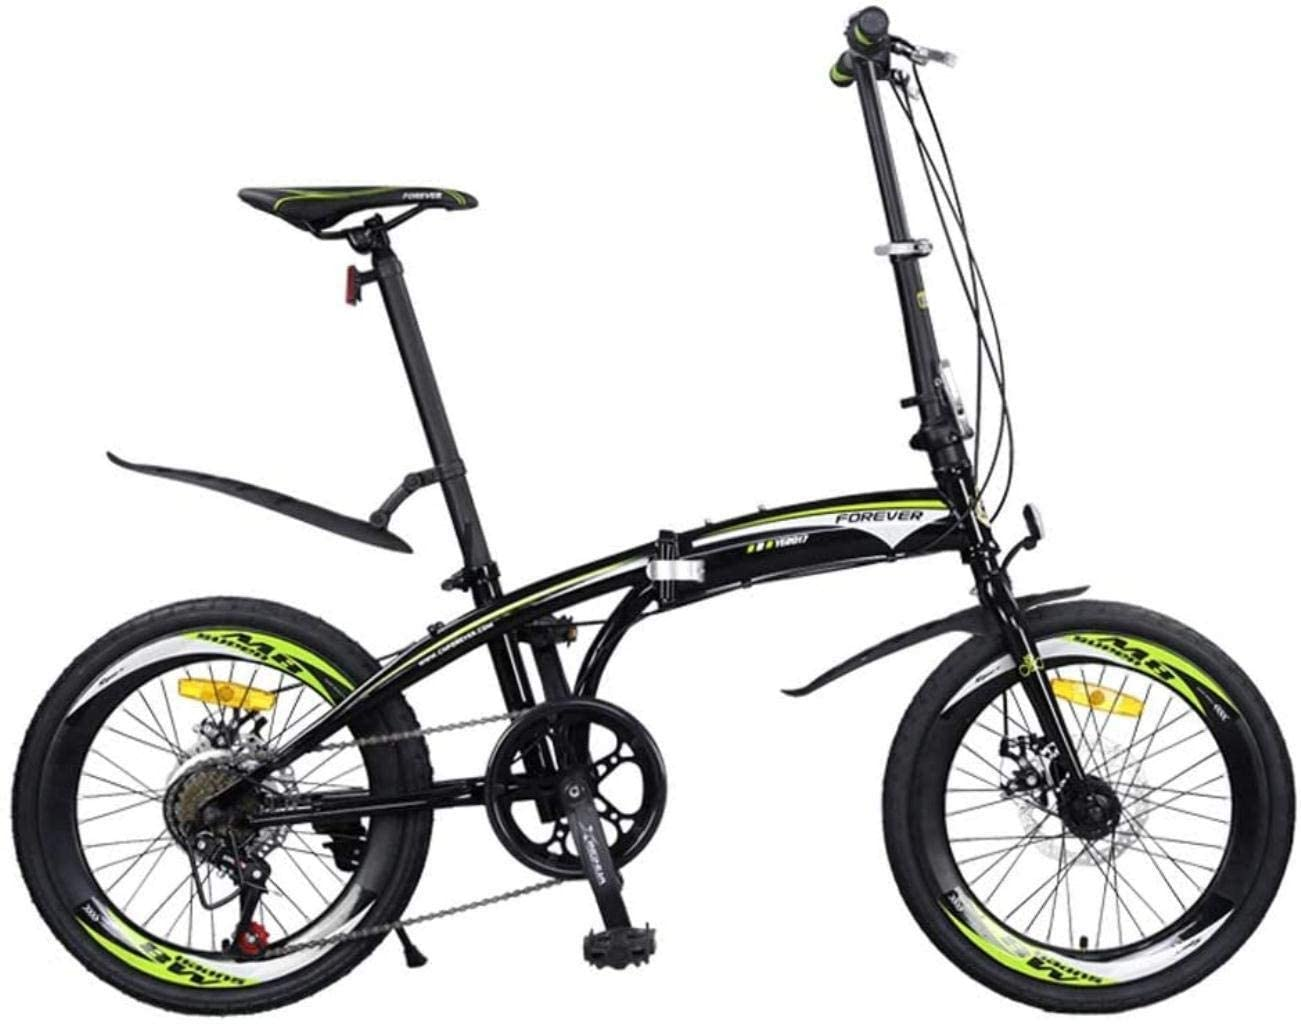 CSS Folding Bicycle, 20 inch 7-Speed Foldable Bike Alloy Lightweight Commuter City Caravan Bicycle Ultra Light Portable Bike 6-24,Green